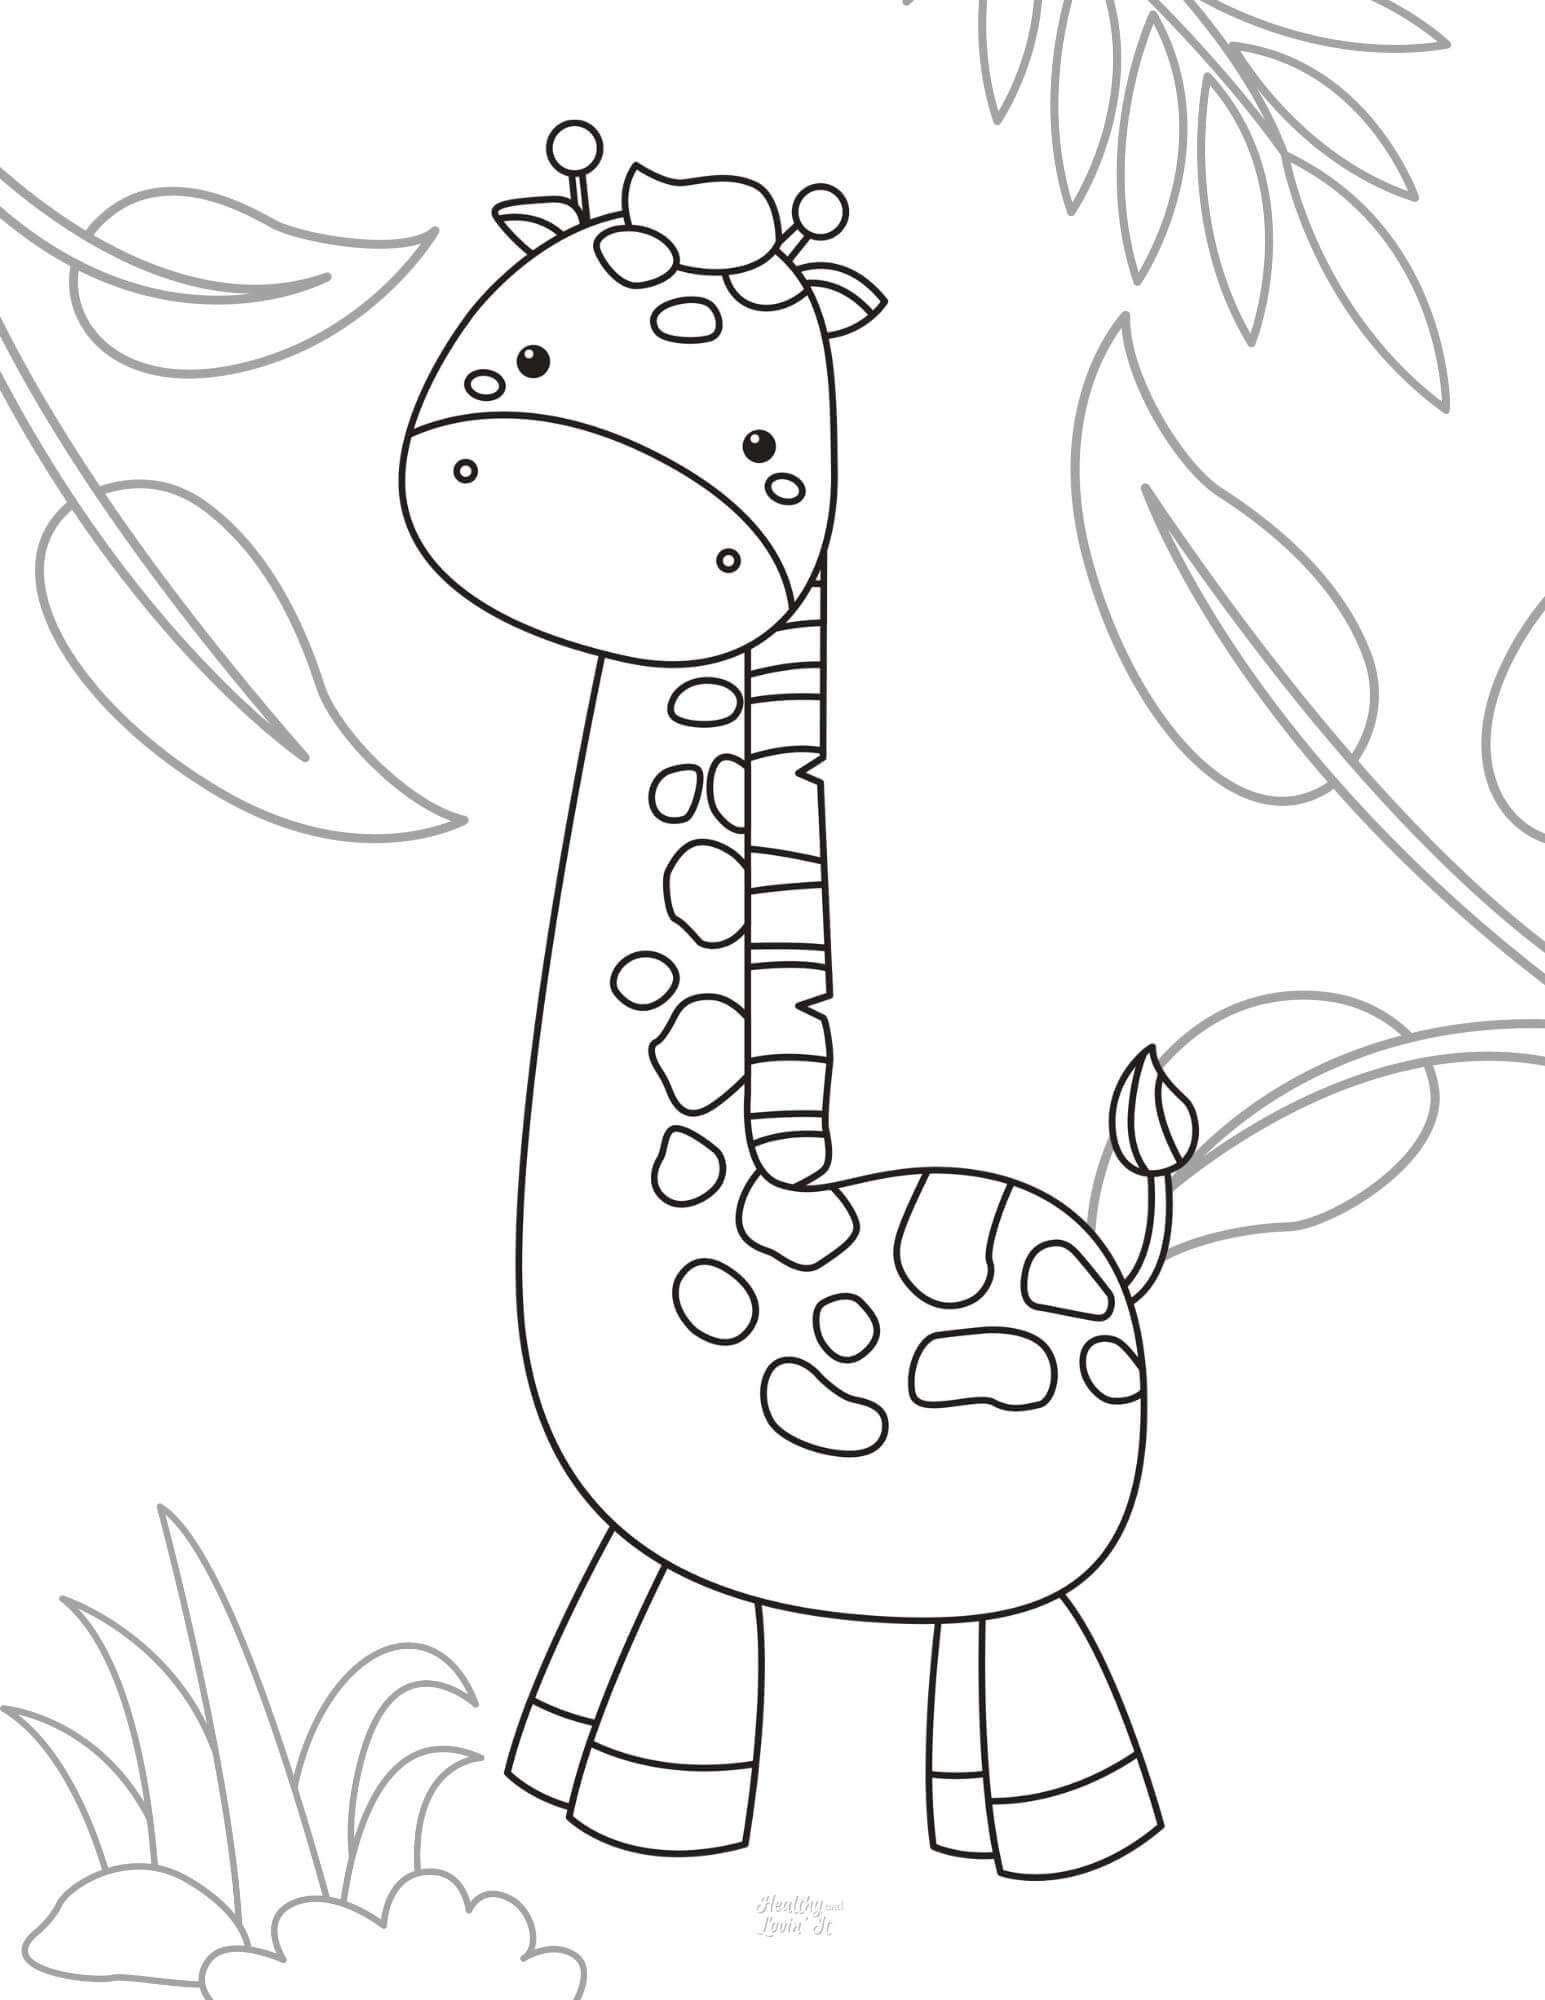 Cute Giraffe Coloring Pages Free Printables Healthy And Lovin It In 2021 Giraffe Coloring Pages Zoo Coloring Pages Coloring Pages [ 2000 x 1545 Pixel ]